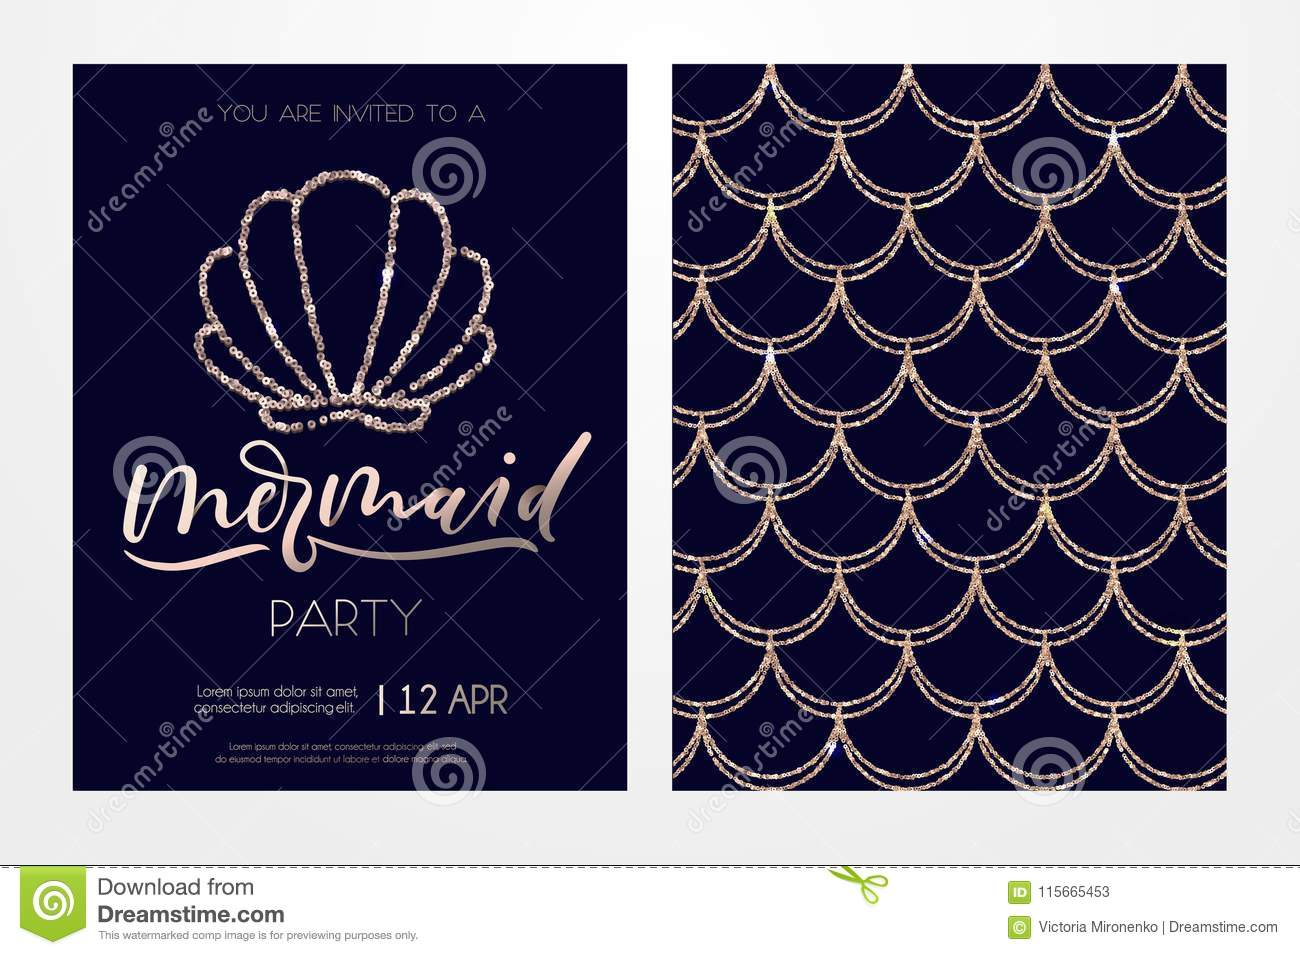 Mermaid party invitation card with rose gols seashell and letter mermaid party invitation card with rose gols seashell and lettering elegance design template for birthday anniversary summer party etc stopboris Image collections